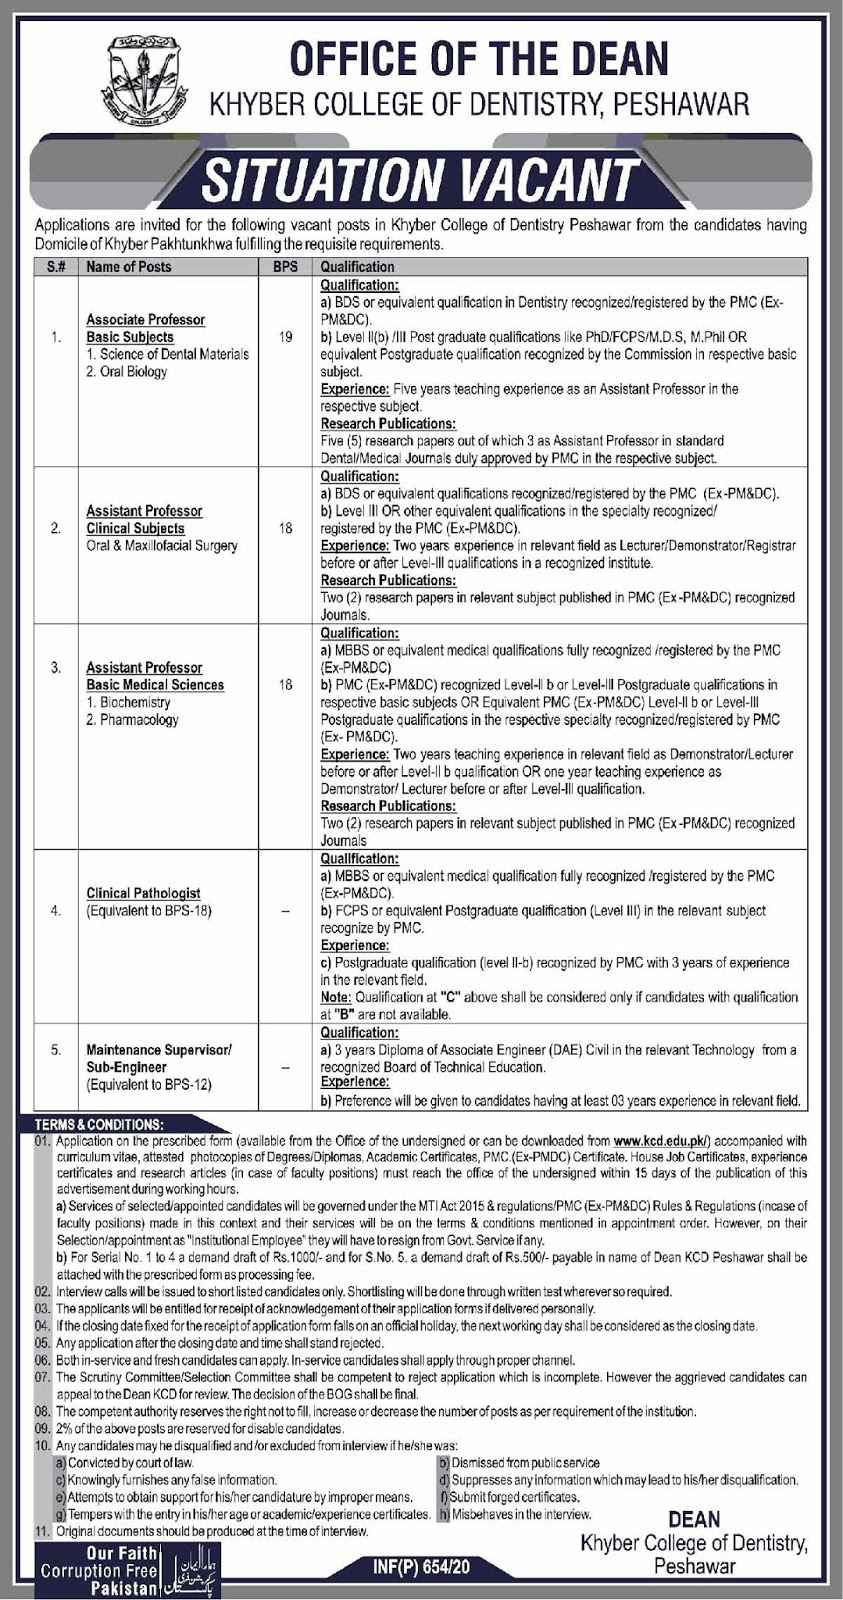 Khyber College Of Dentistry Peshawar Jobs For Assistant Professor, Associate Professor and Others February 2020